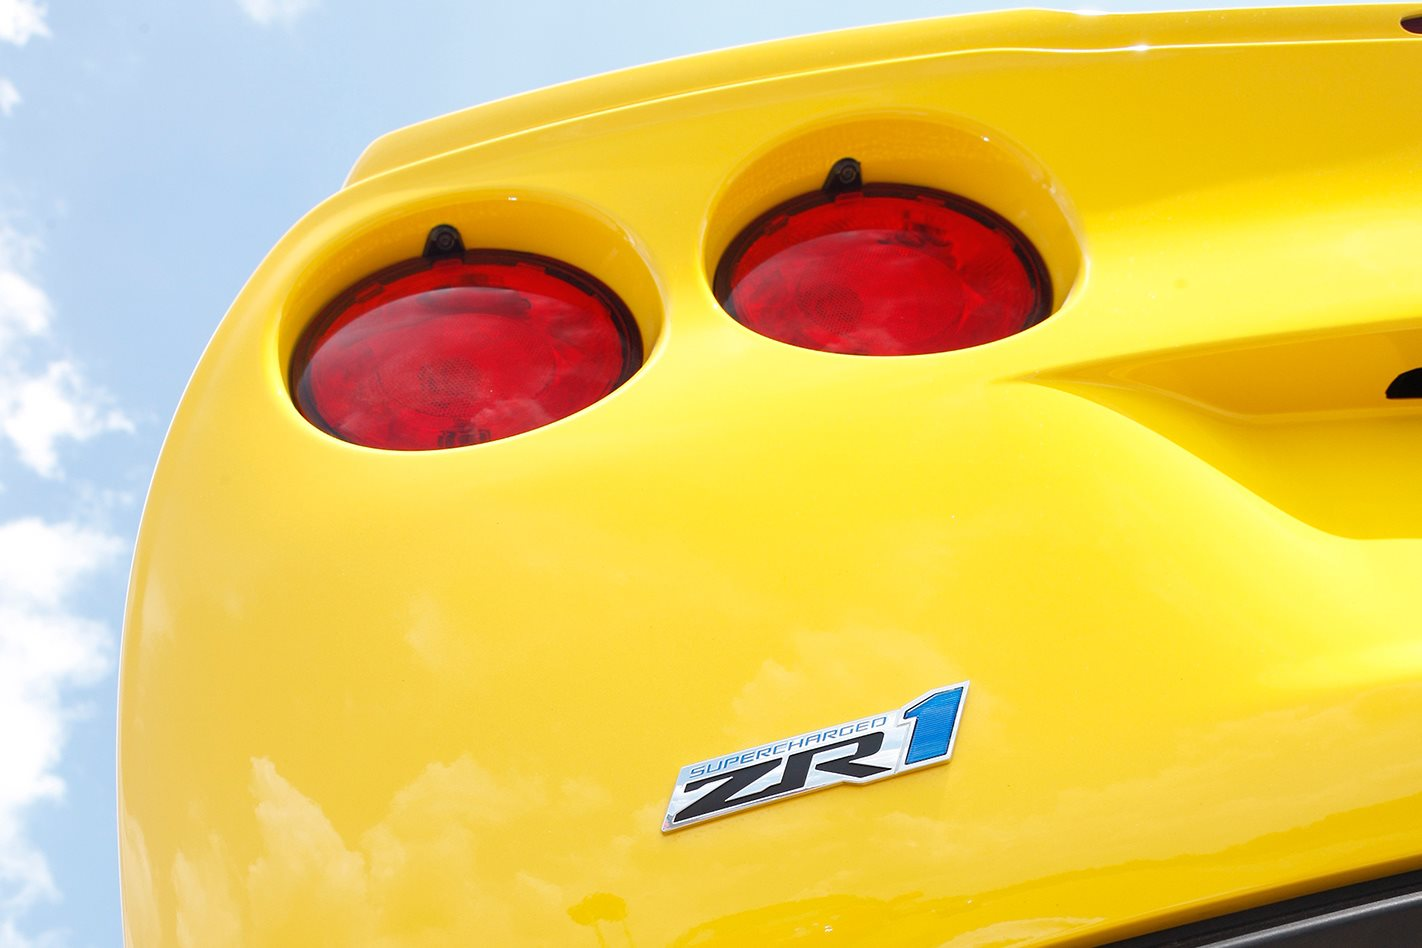 2009-Chevrolet-Corvette-ZR1-badge.jpg